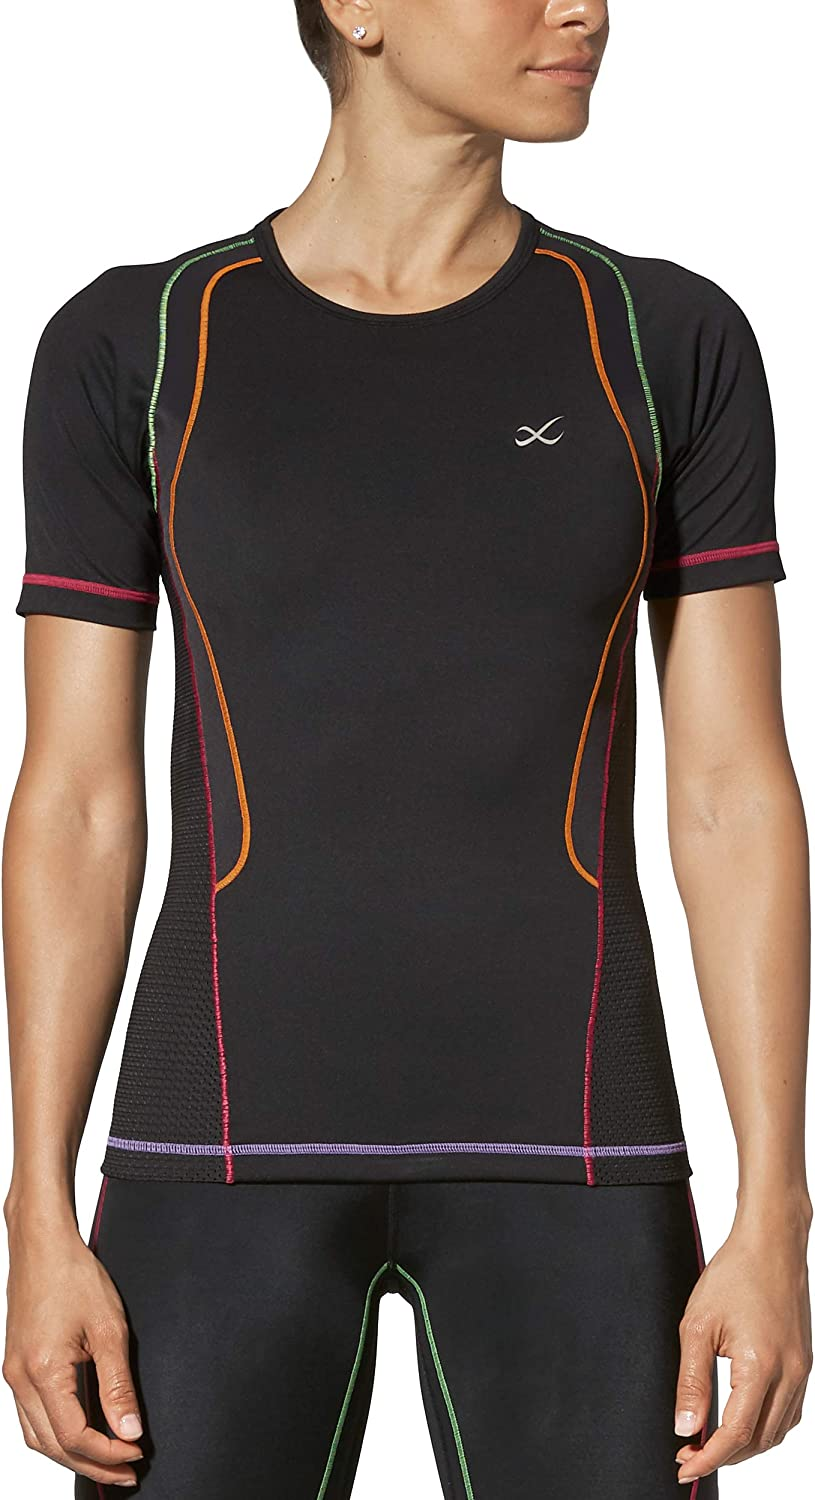 CW-X Women's Short Sleeve Ventilator Web Top